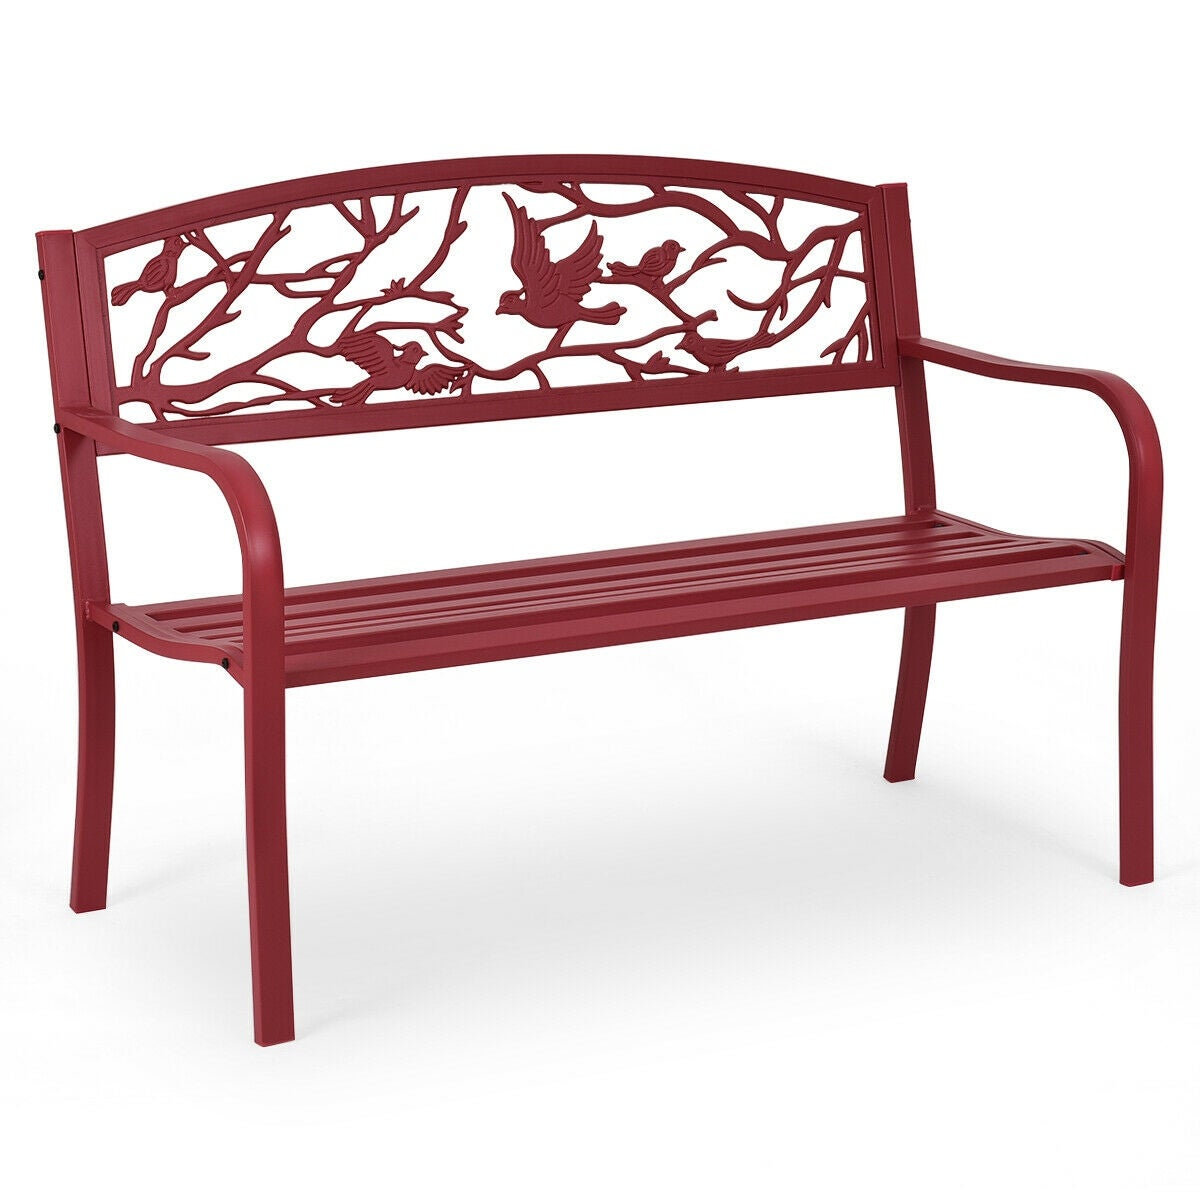 Costway Patio Garden Bench Park Yard Outdoor Furniture Cast Iron Porch Chair Red With Iron Grove Slatted Glider Benches (View 22 of 26)